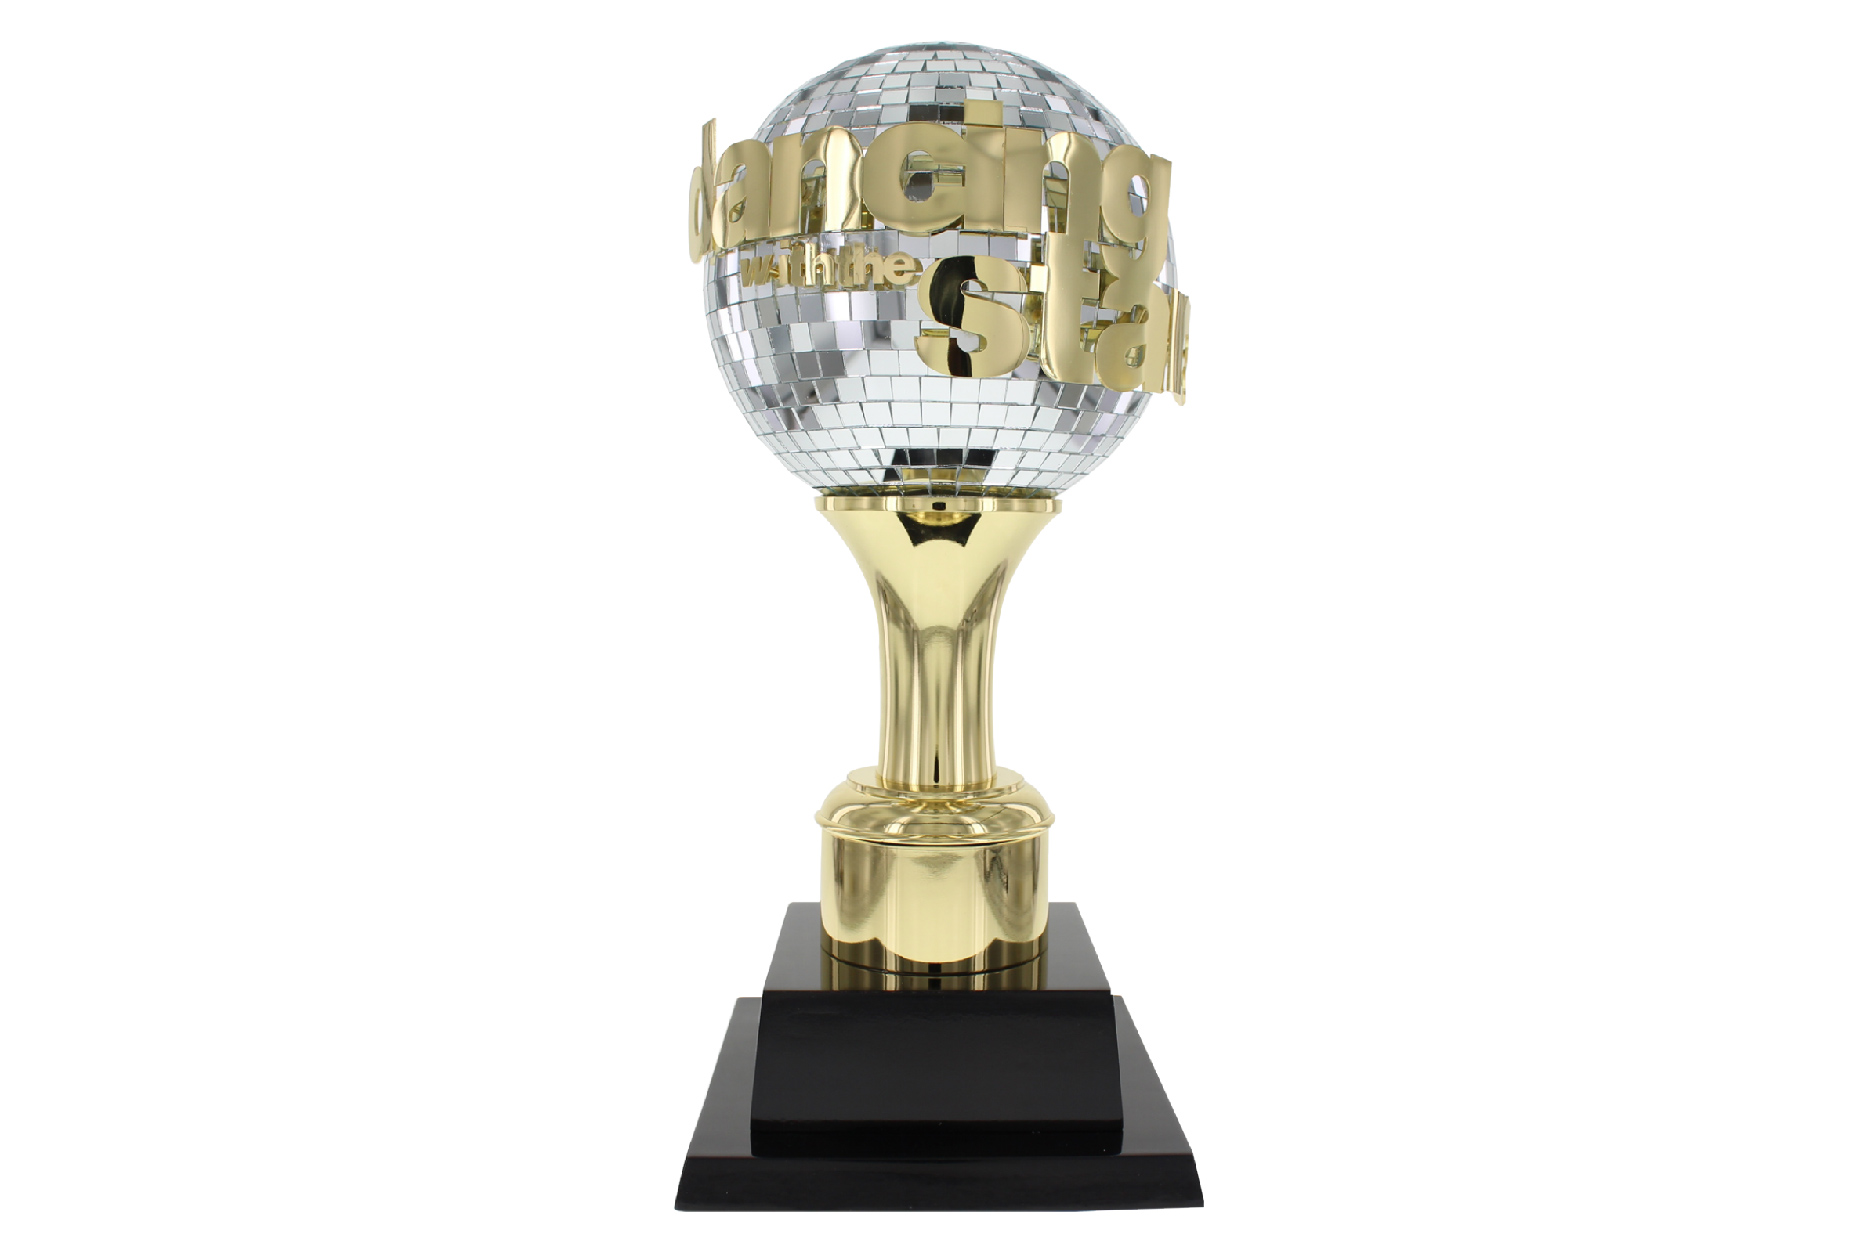 Dancing With The Stars Trophy